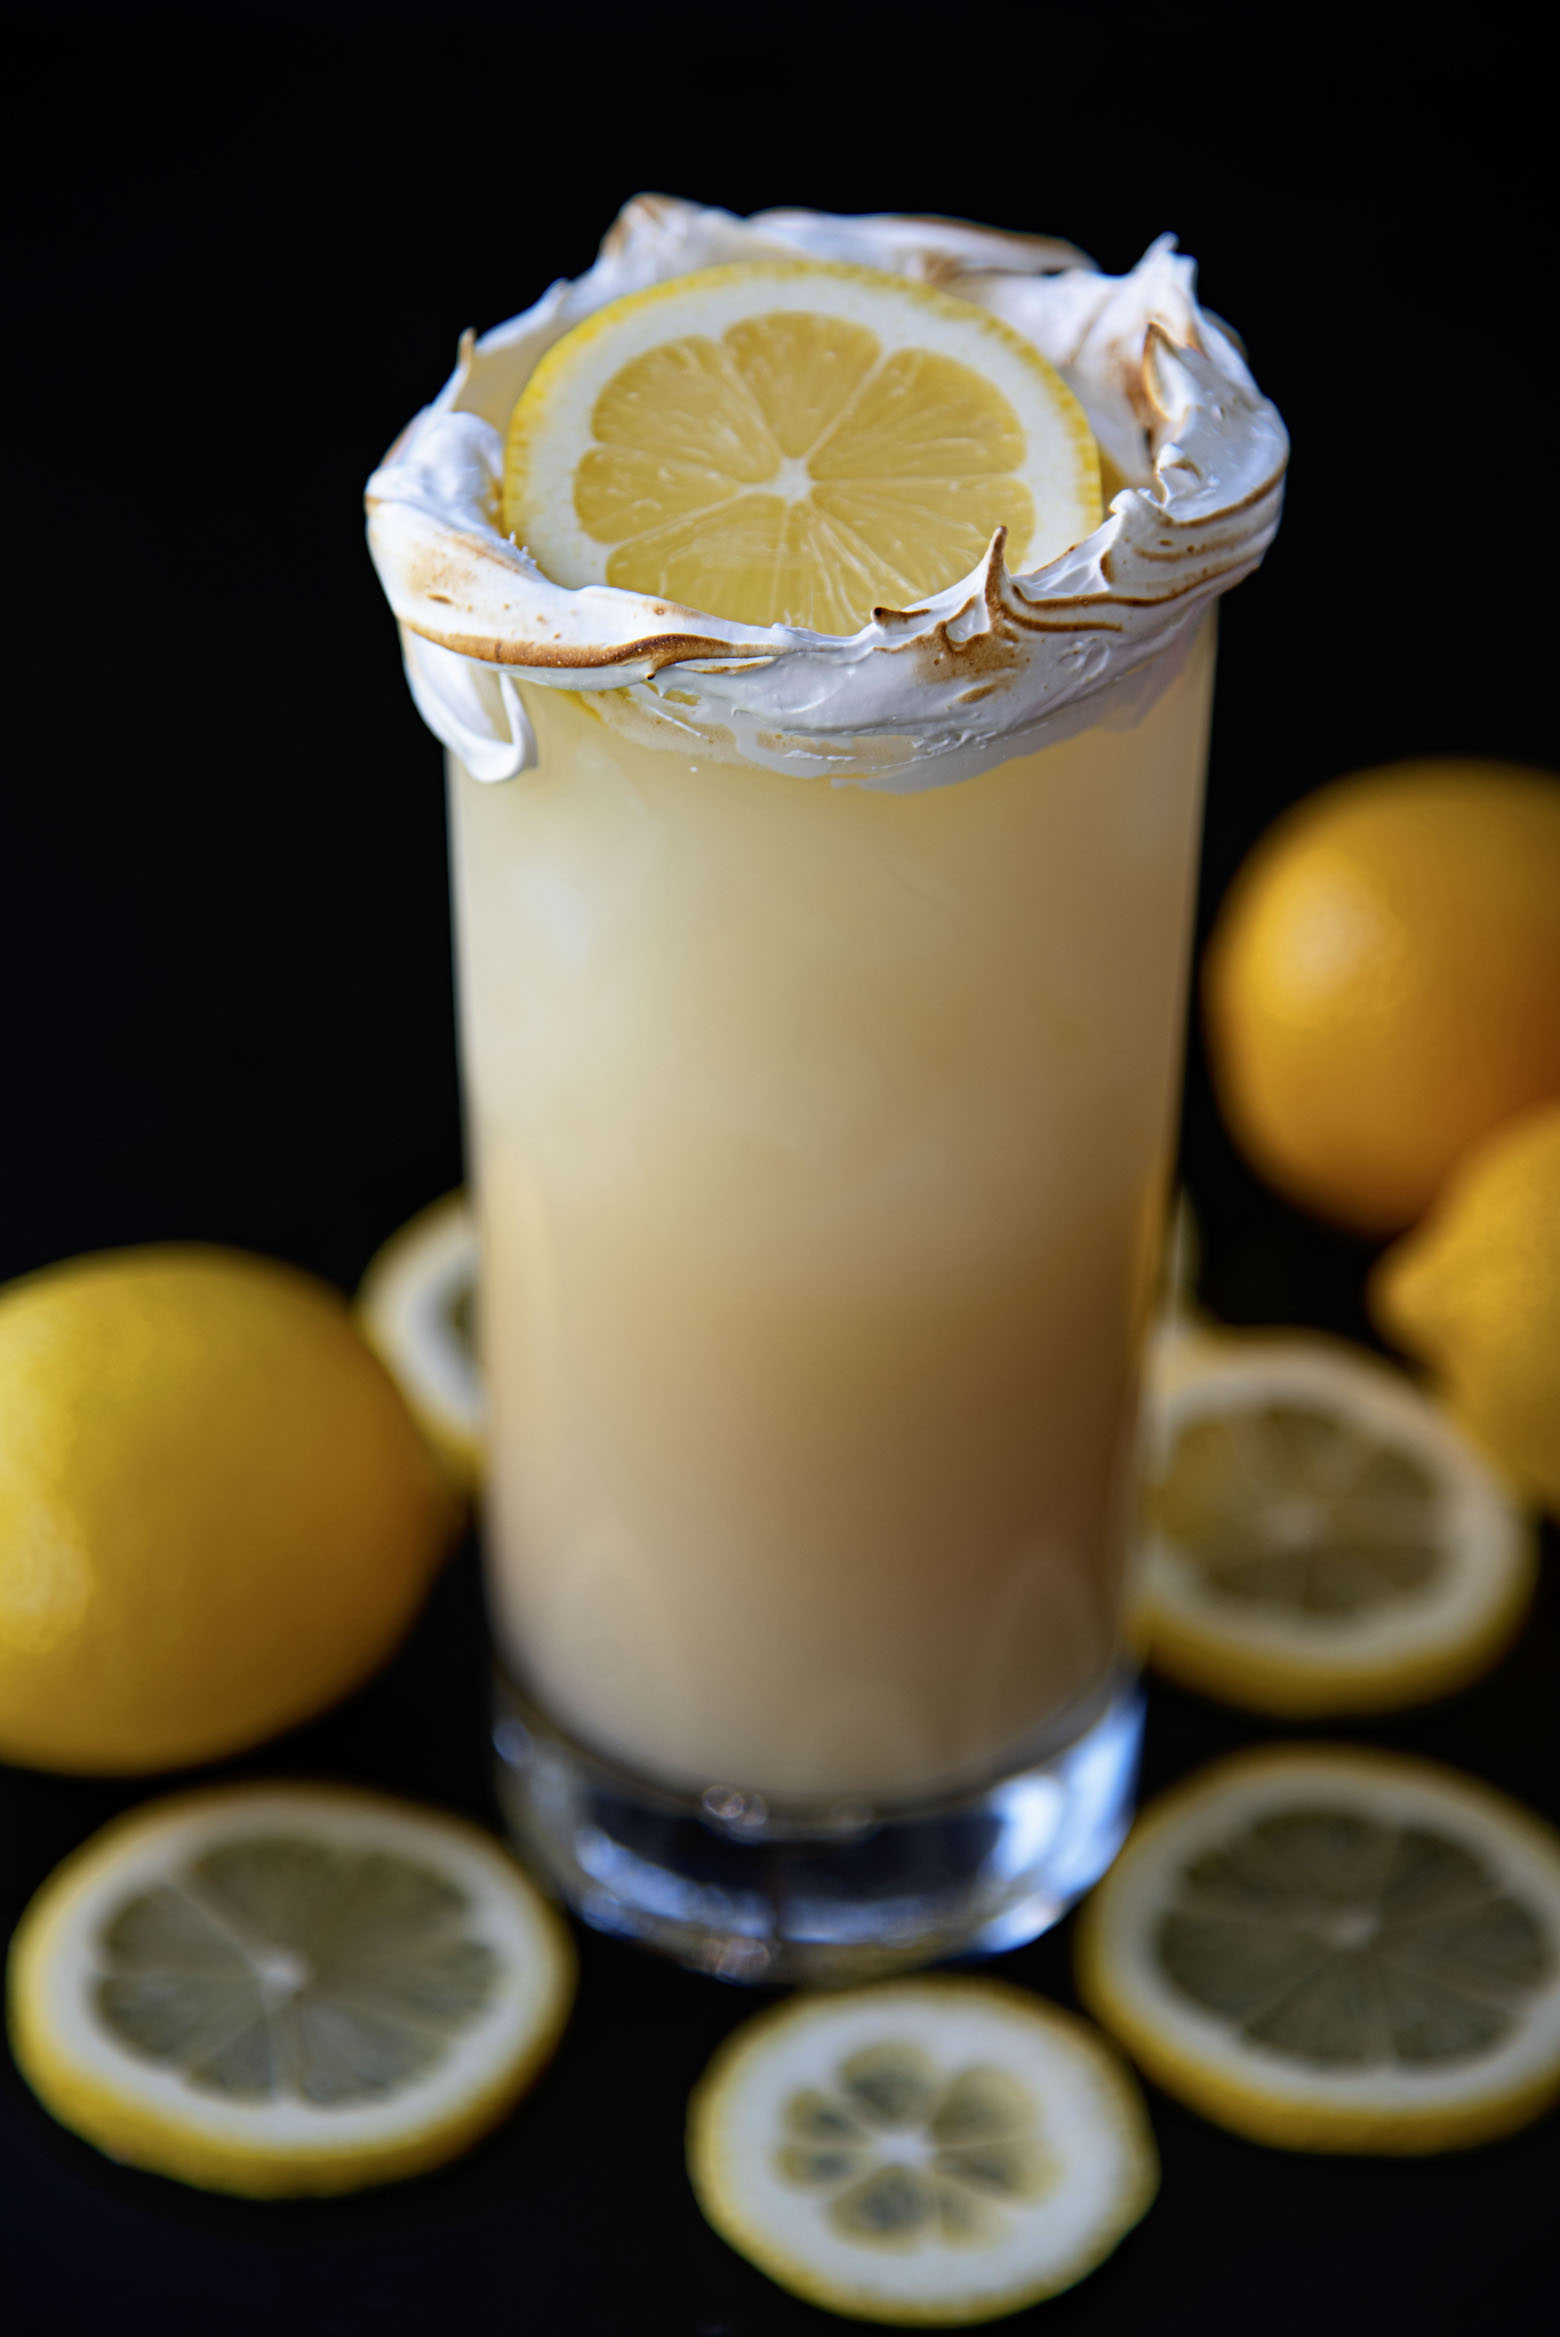 Full shot of the cocktail with fresh lemons around the glass.